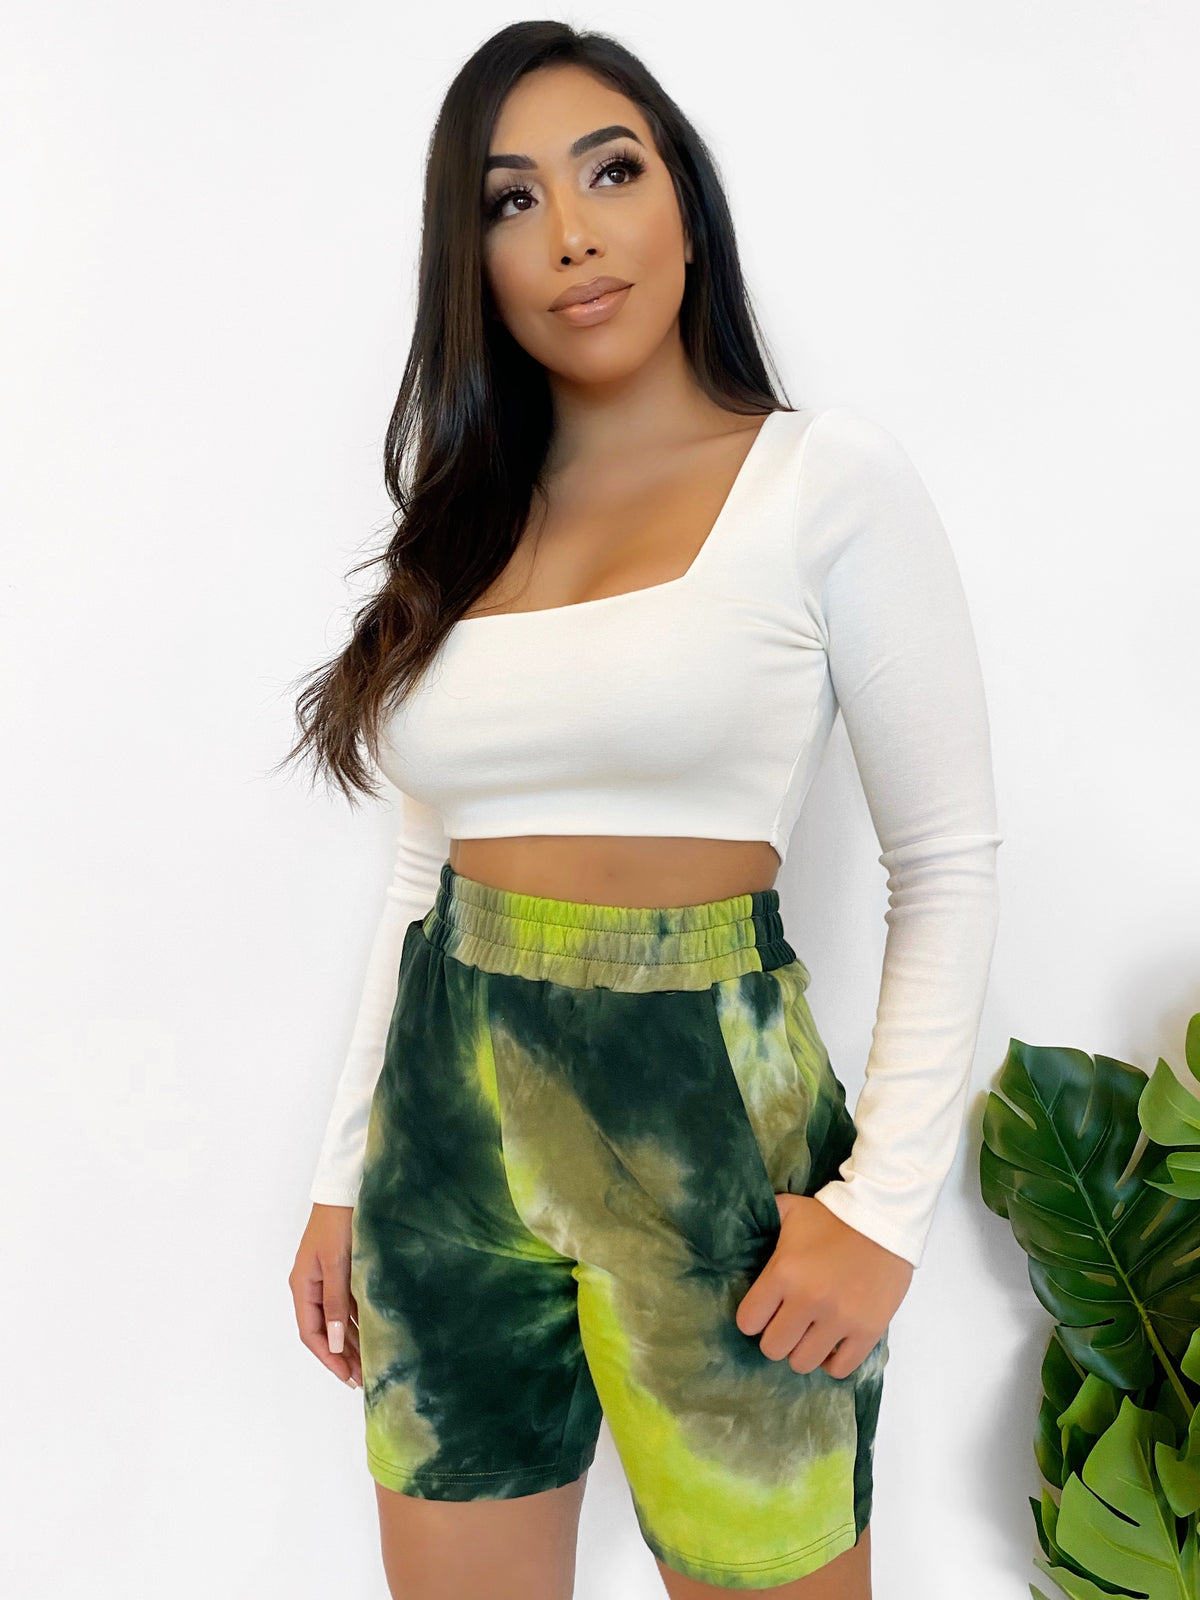 olive tie dye shorts, above the knee length, high waist, 2 front pockets